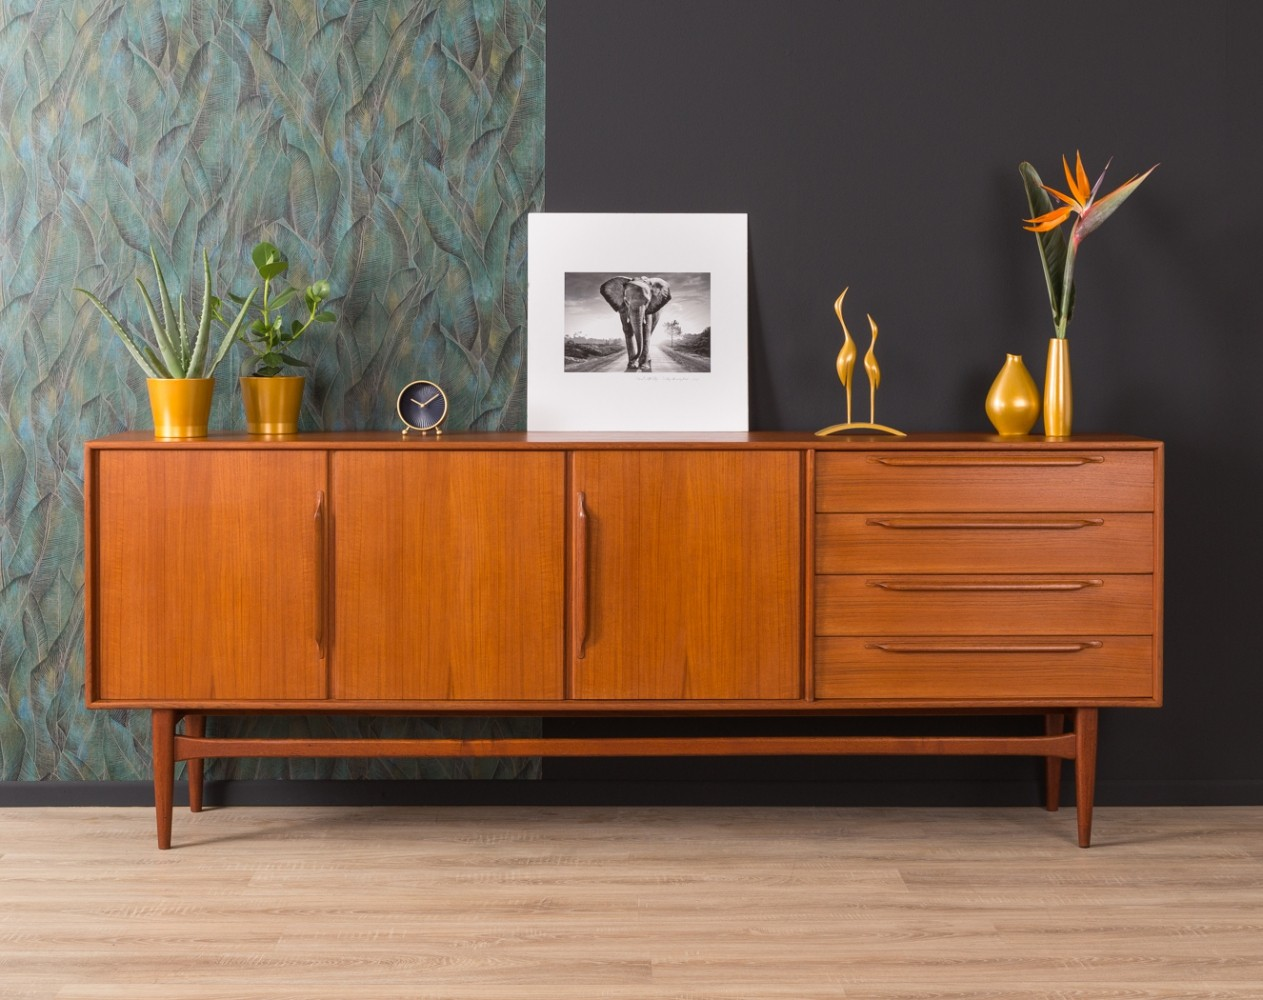 German Sideboard by Heinrich Riestenpatt from the 1960s